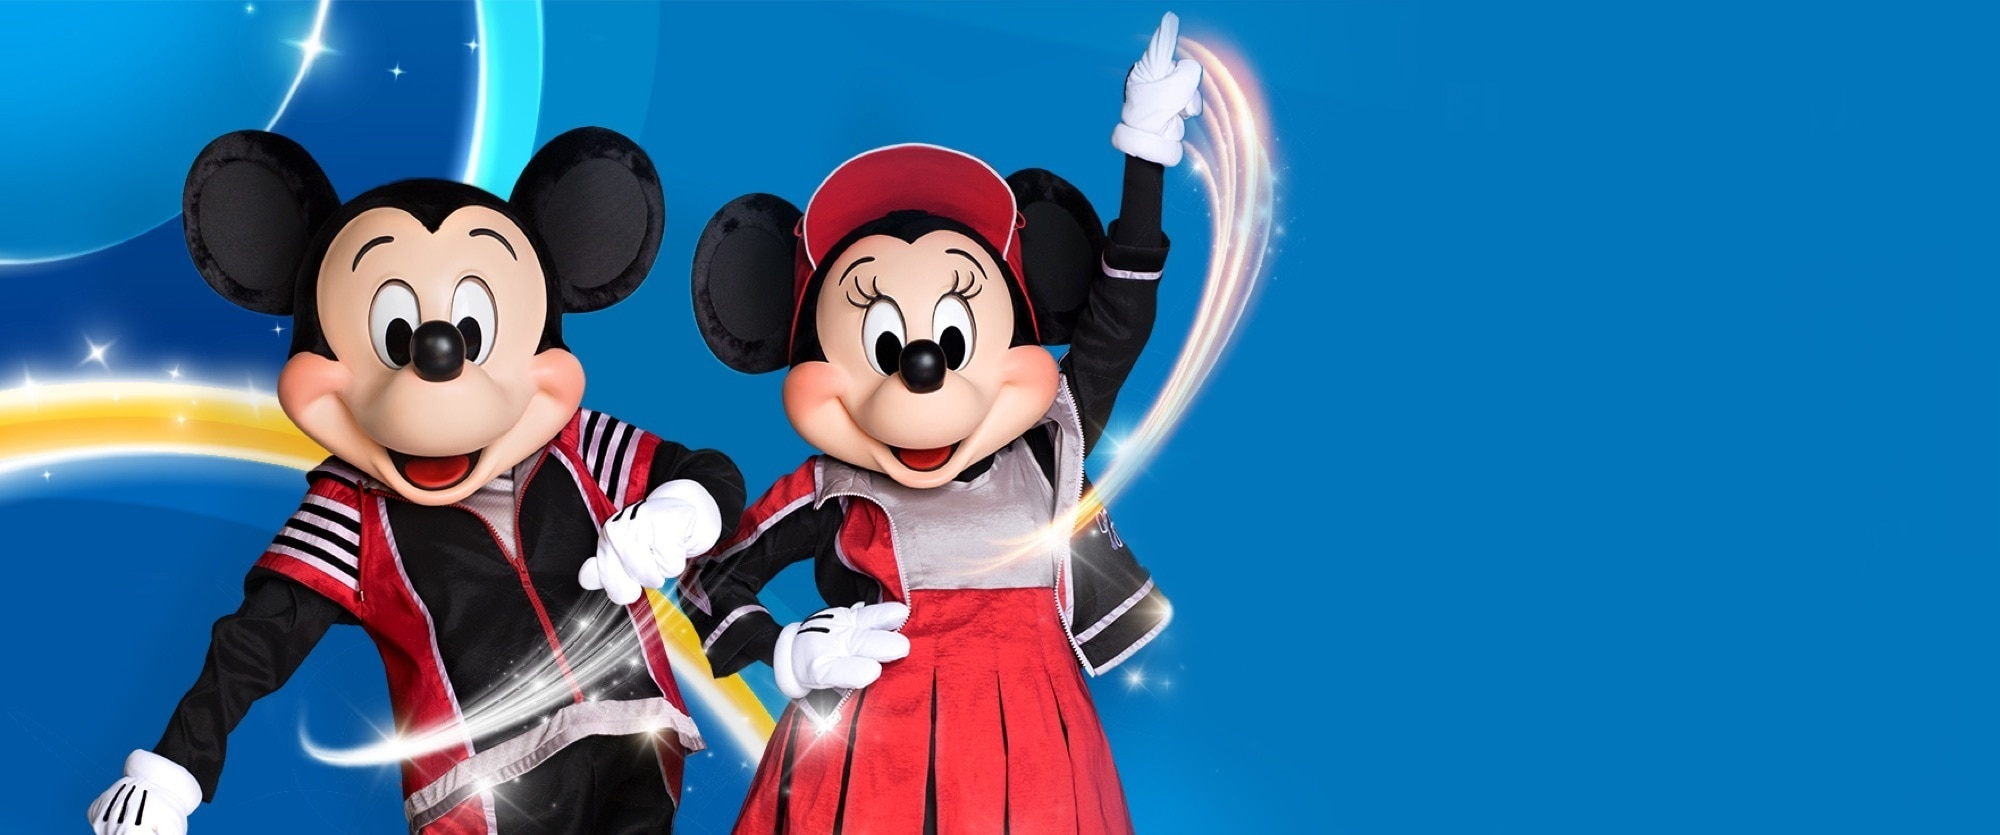 Stay Fit with Mickey and Minnie